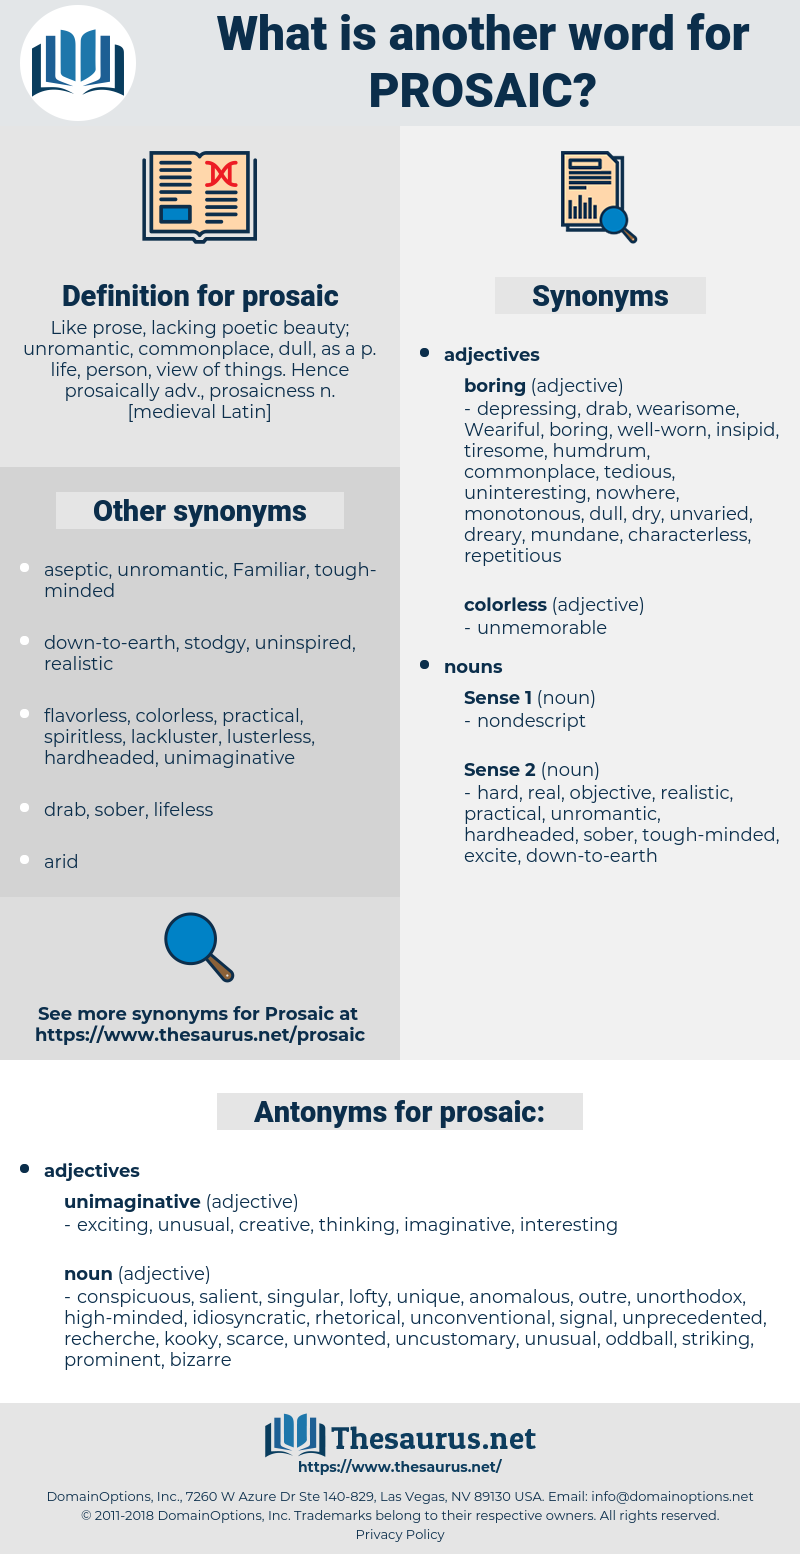 prosaic, synonym prosaic, another word for prosaic, words like prosaic, thesaurus prosaic